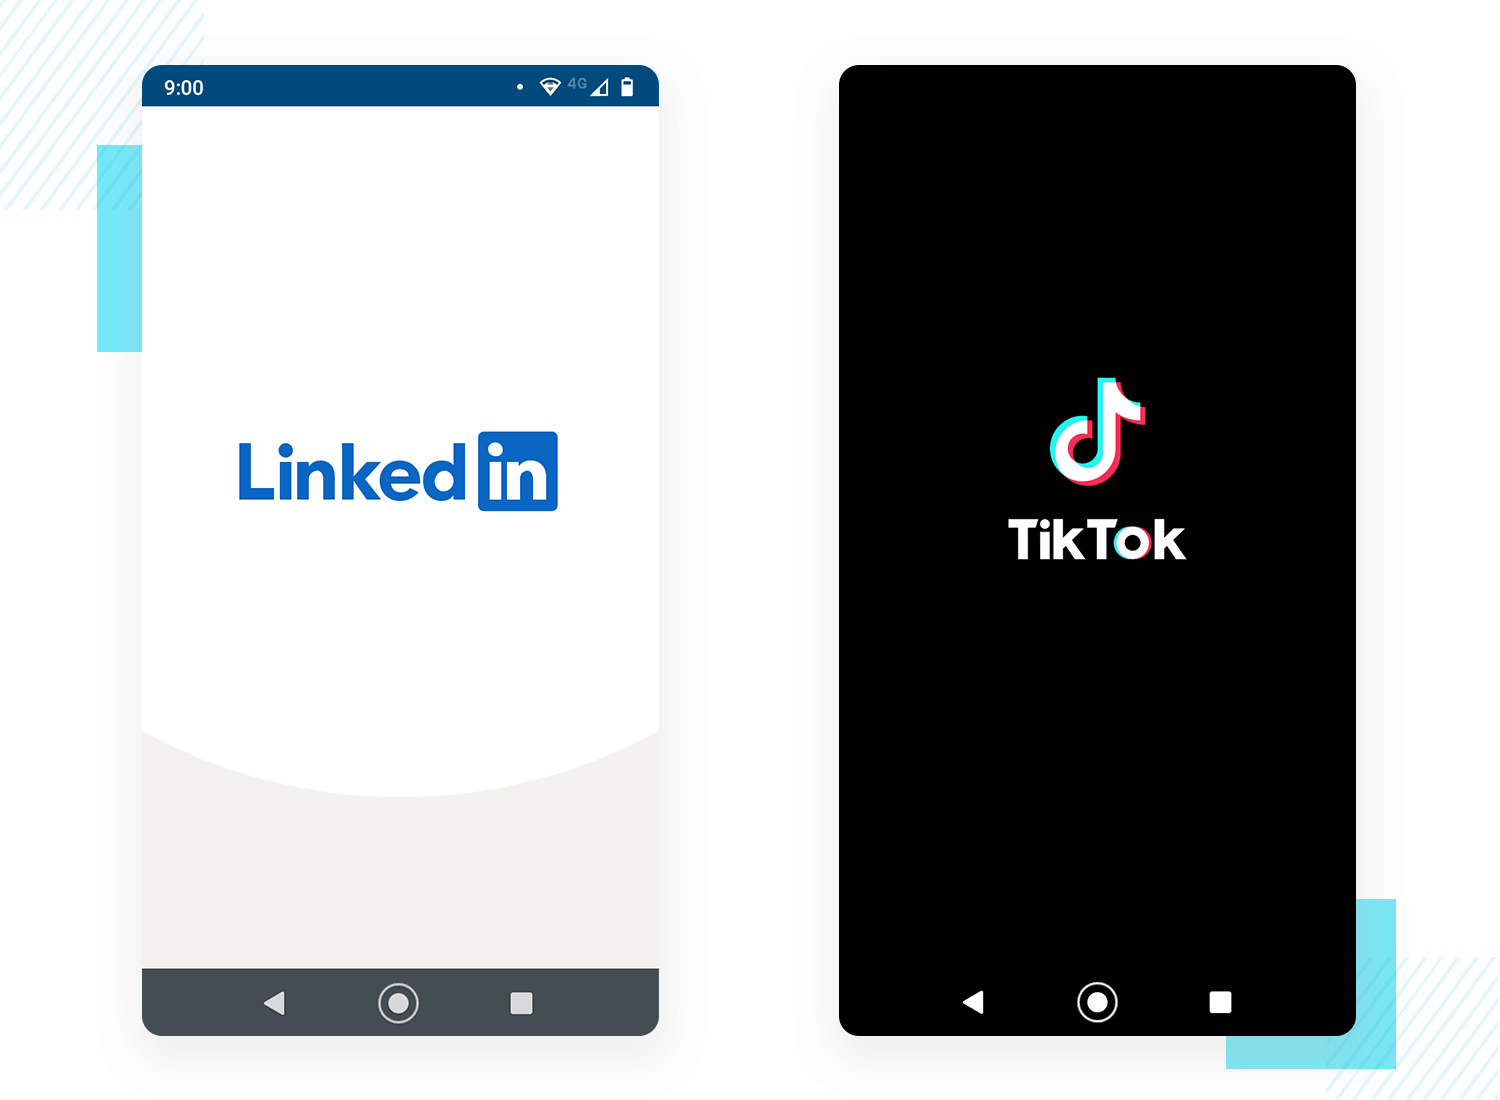 example of splash screen design by social networks tik tok and linkedin